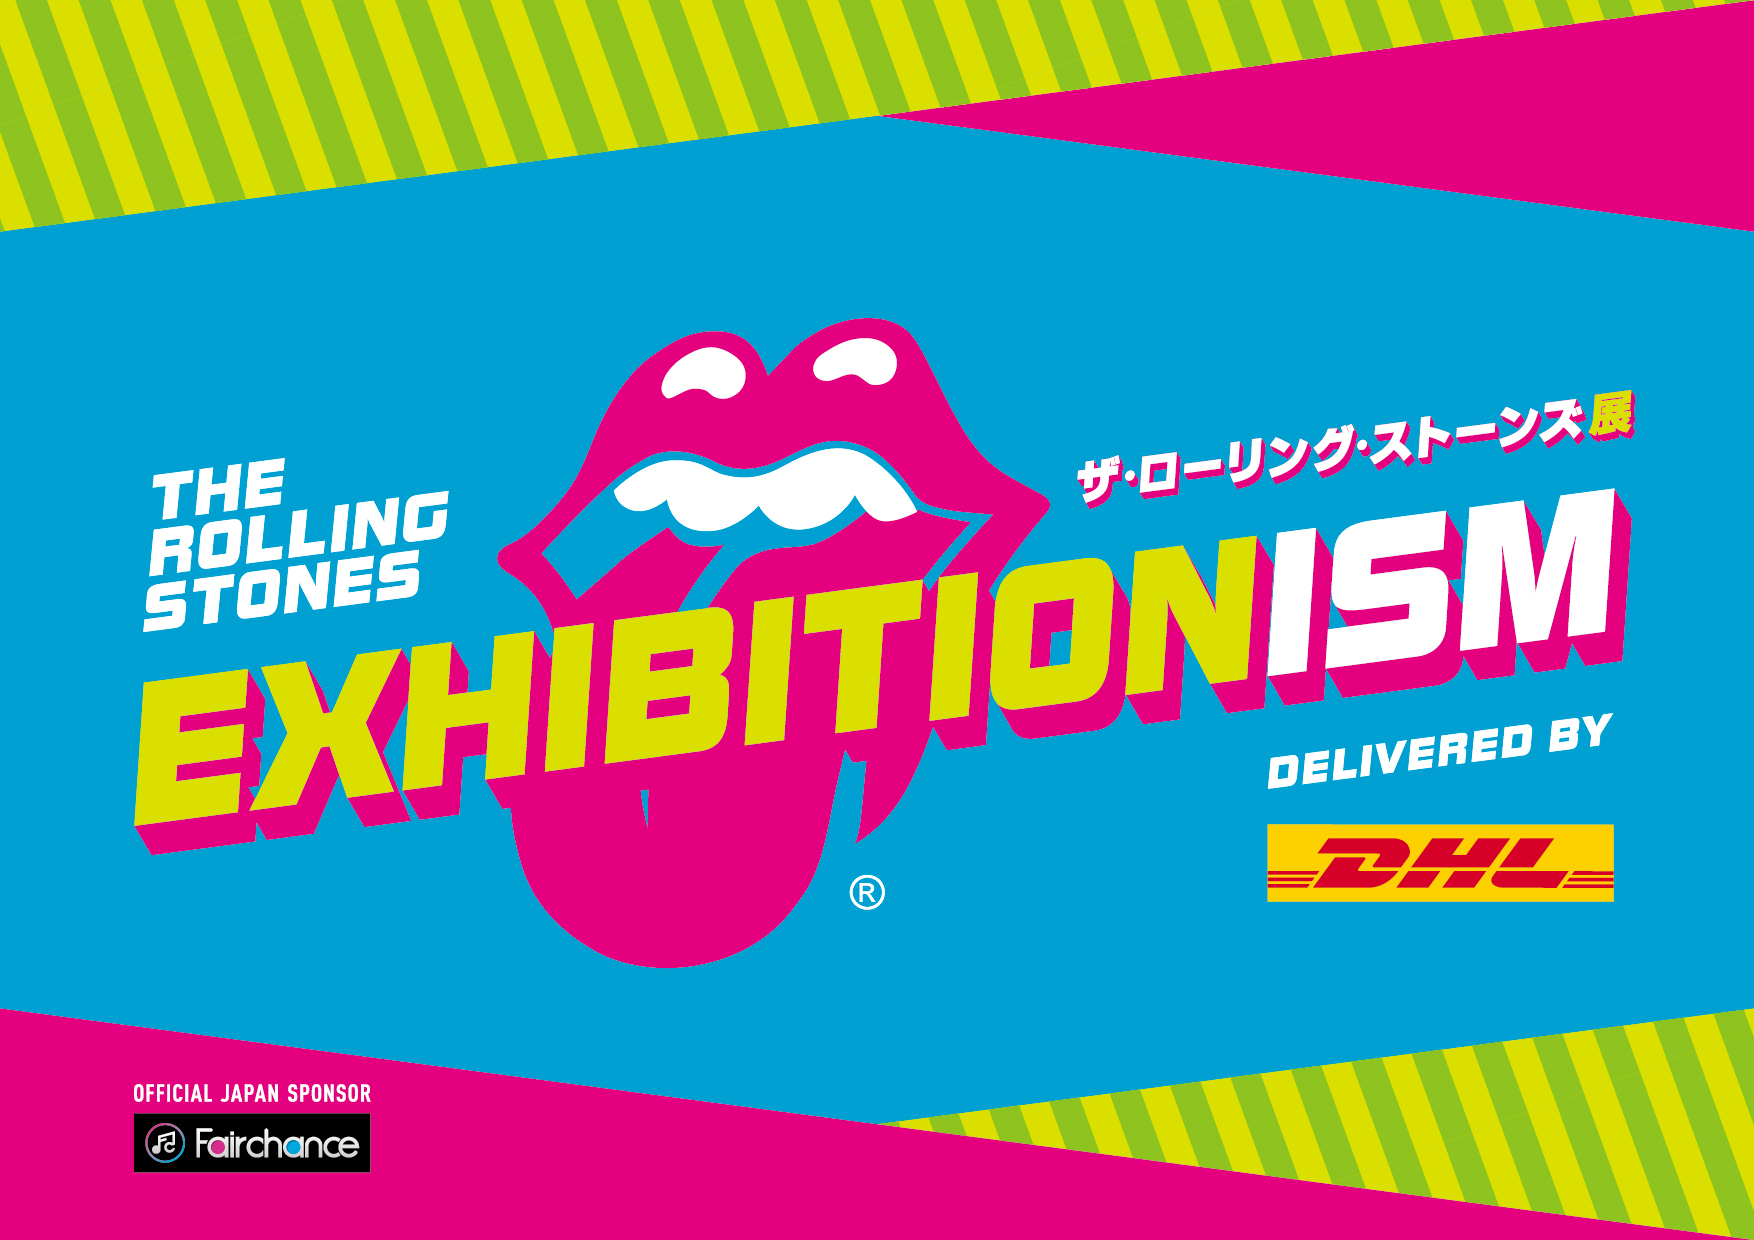 """""""Exhibitionism – The Rolling Stones Exhibition"""" delivered by DHL"""